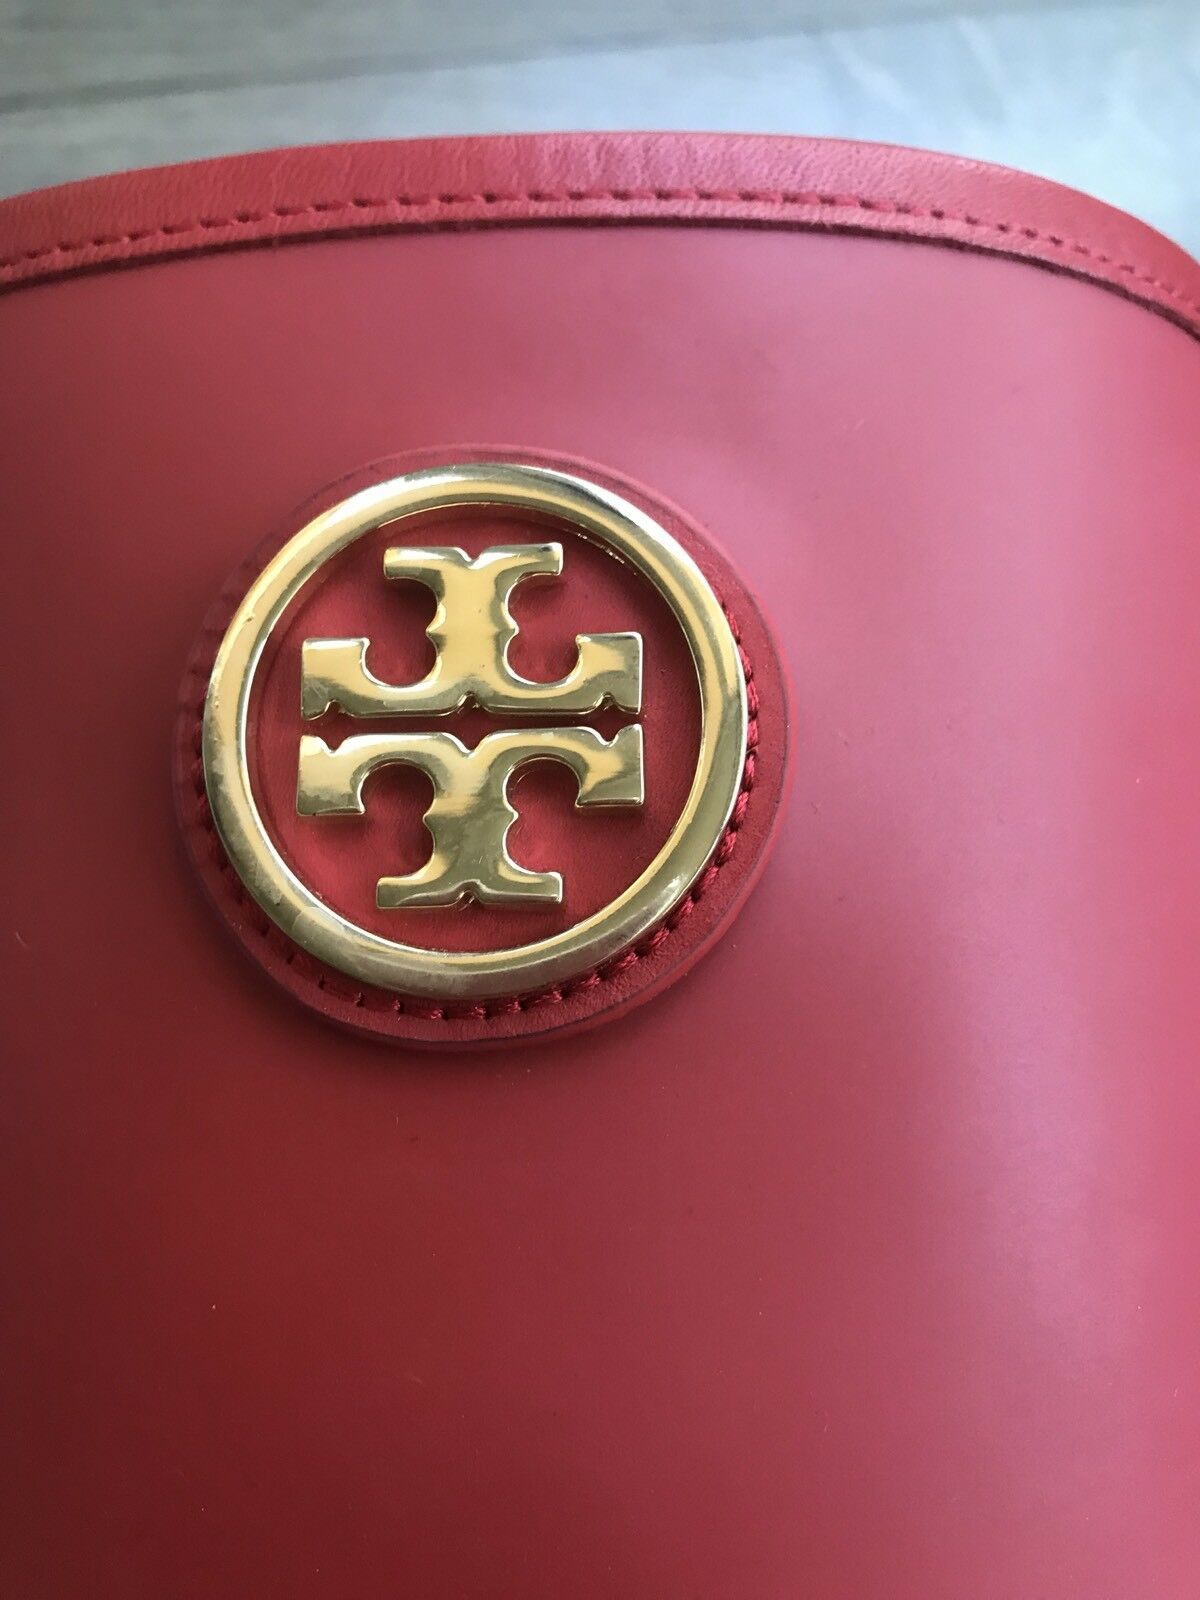 TORY BURCH MAUREEN RAIN BOOT BOOT BOOT TORY RED  BRAND NEW IN THE BOX SIZE 6 2d90c2